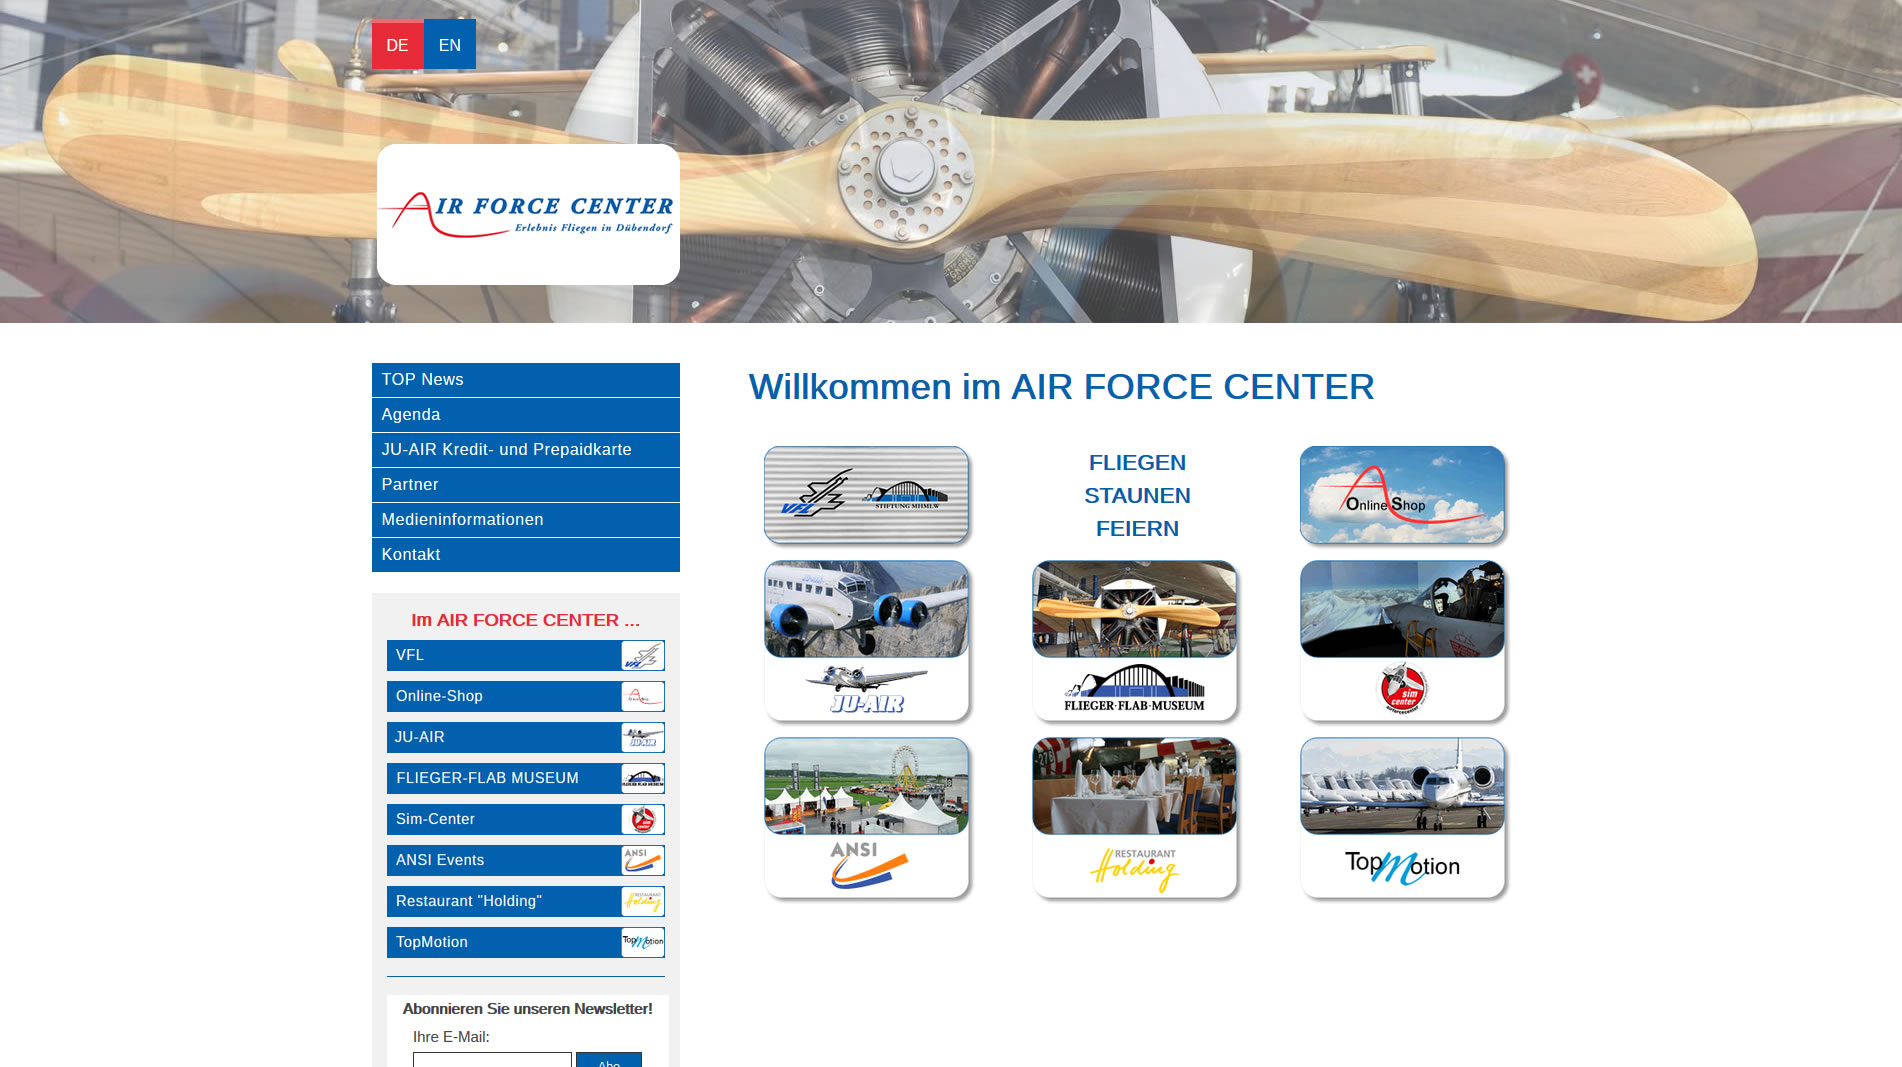 AIR FORCE CENTER